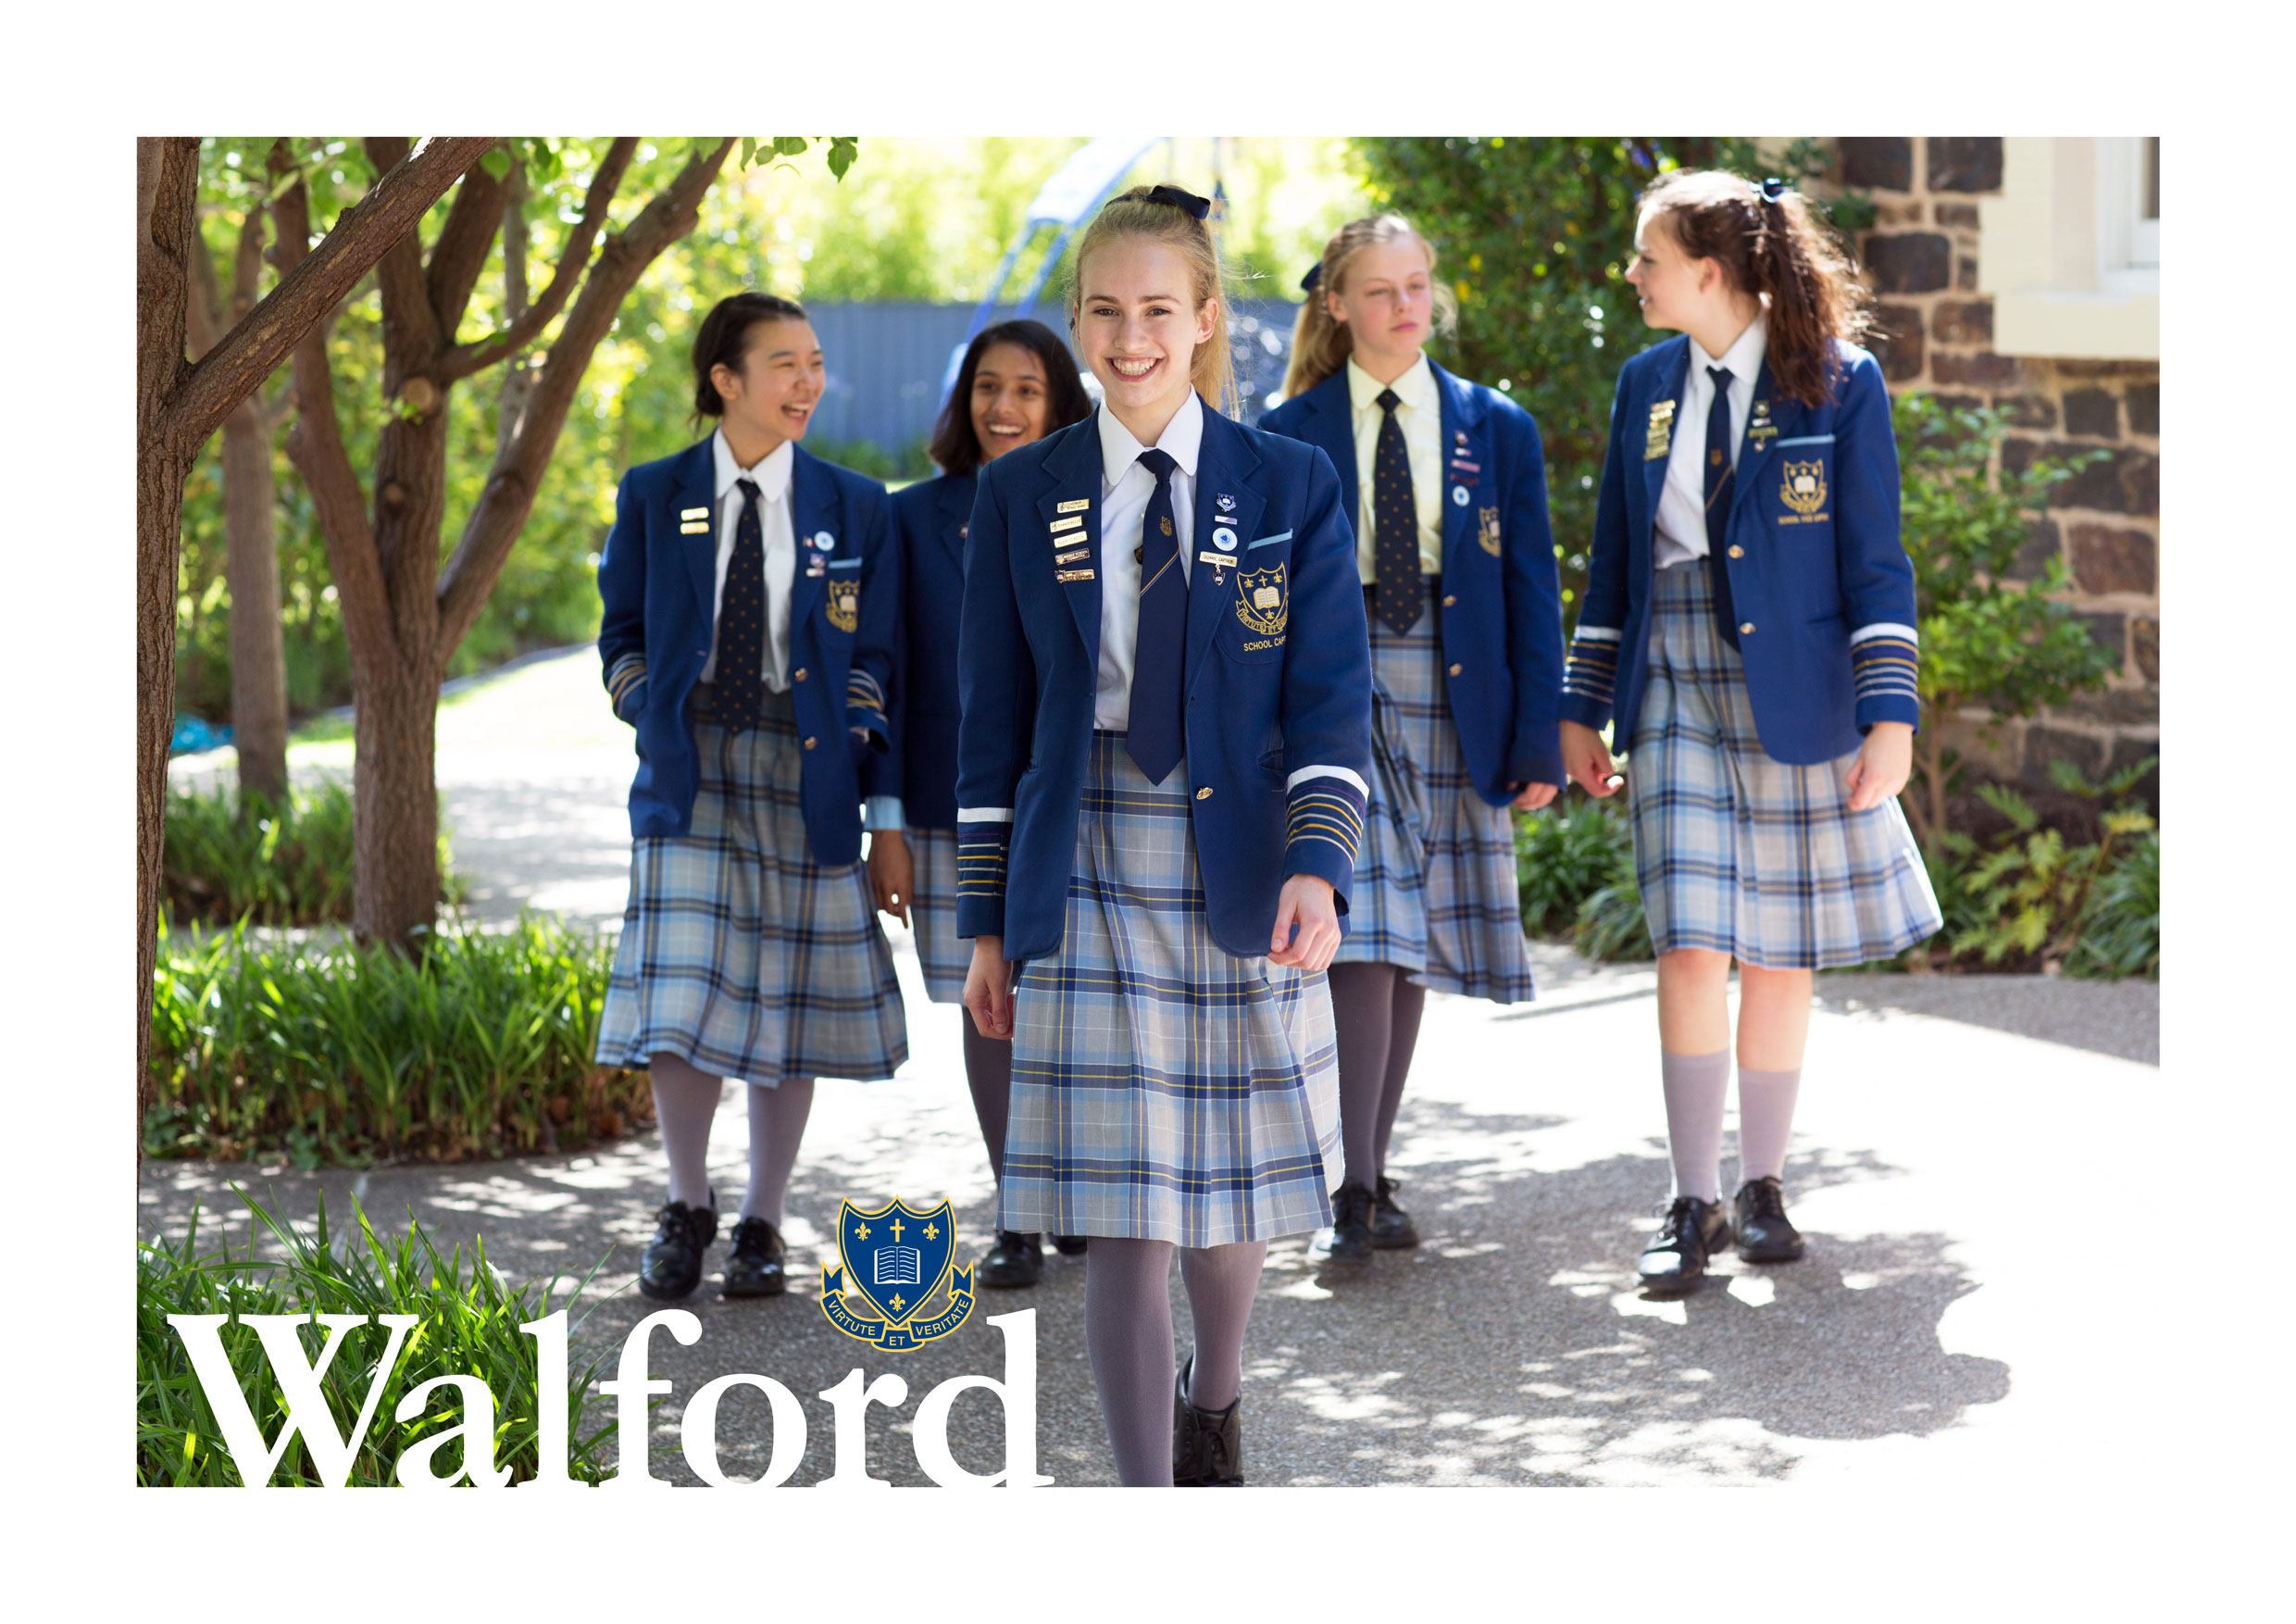 WALFORD-BRANDING-IMAGES_8